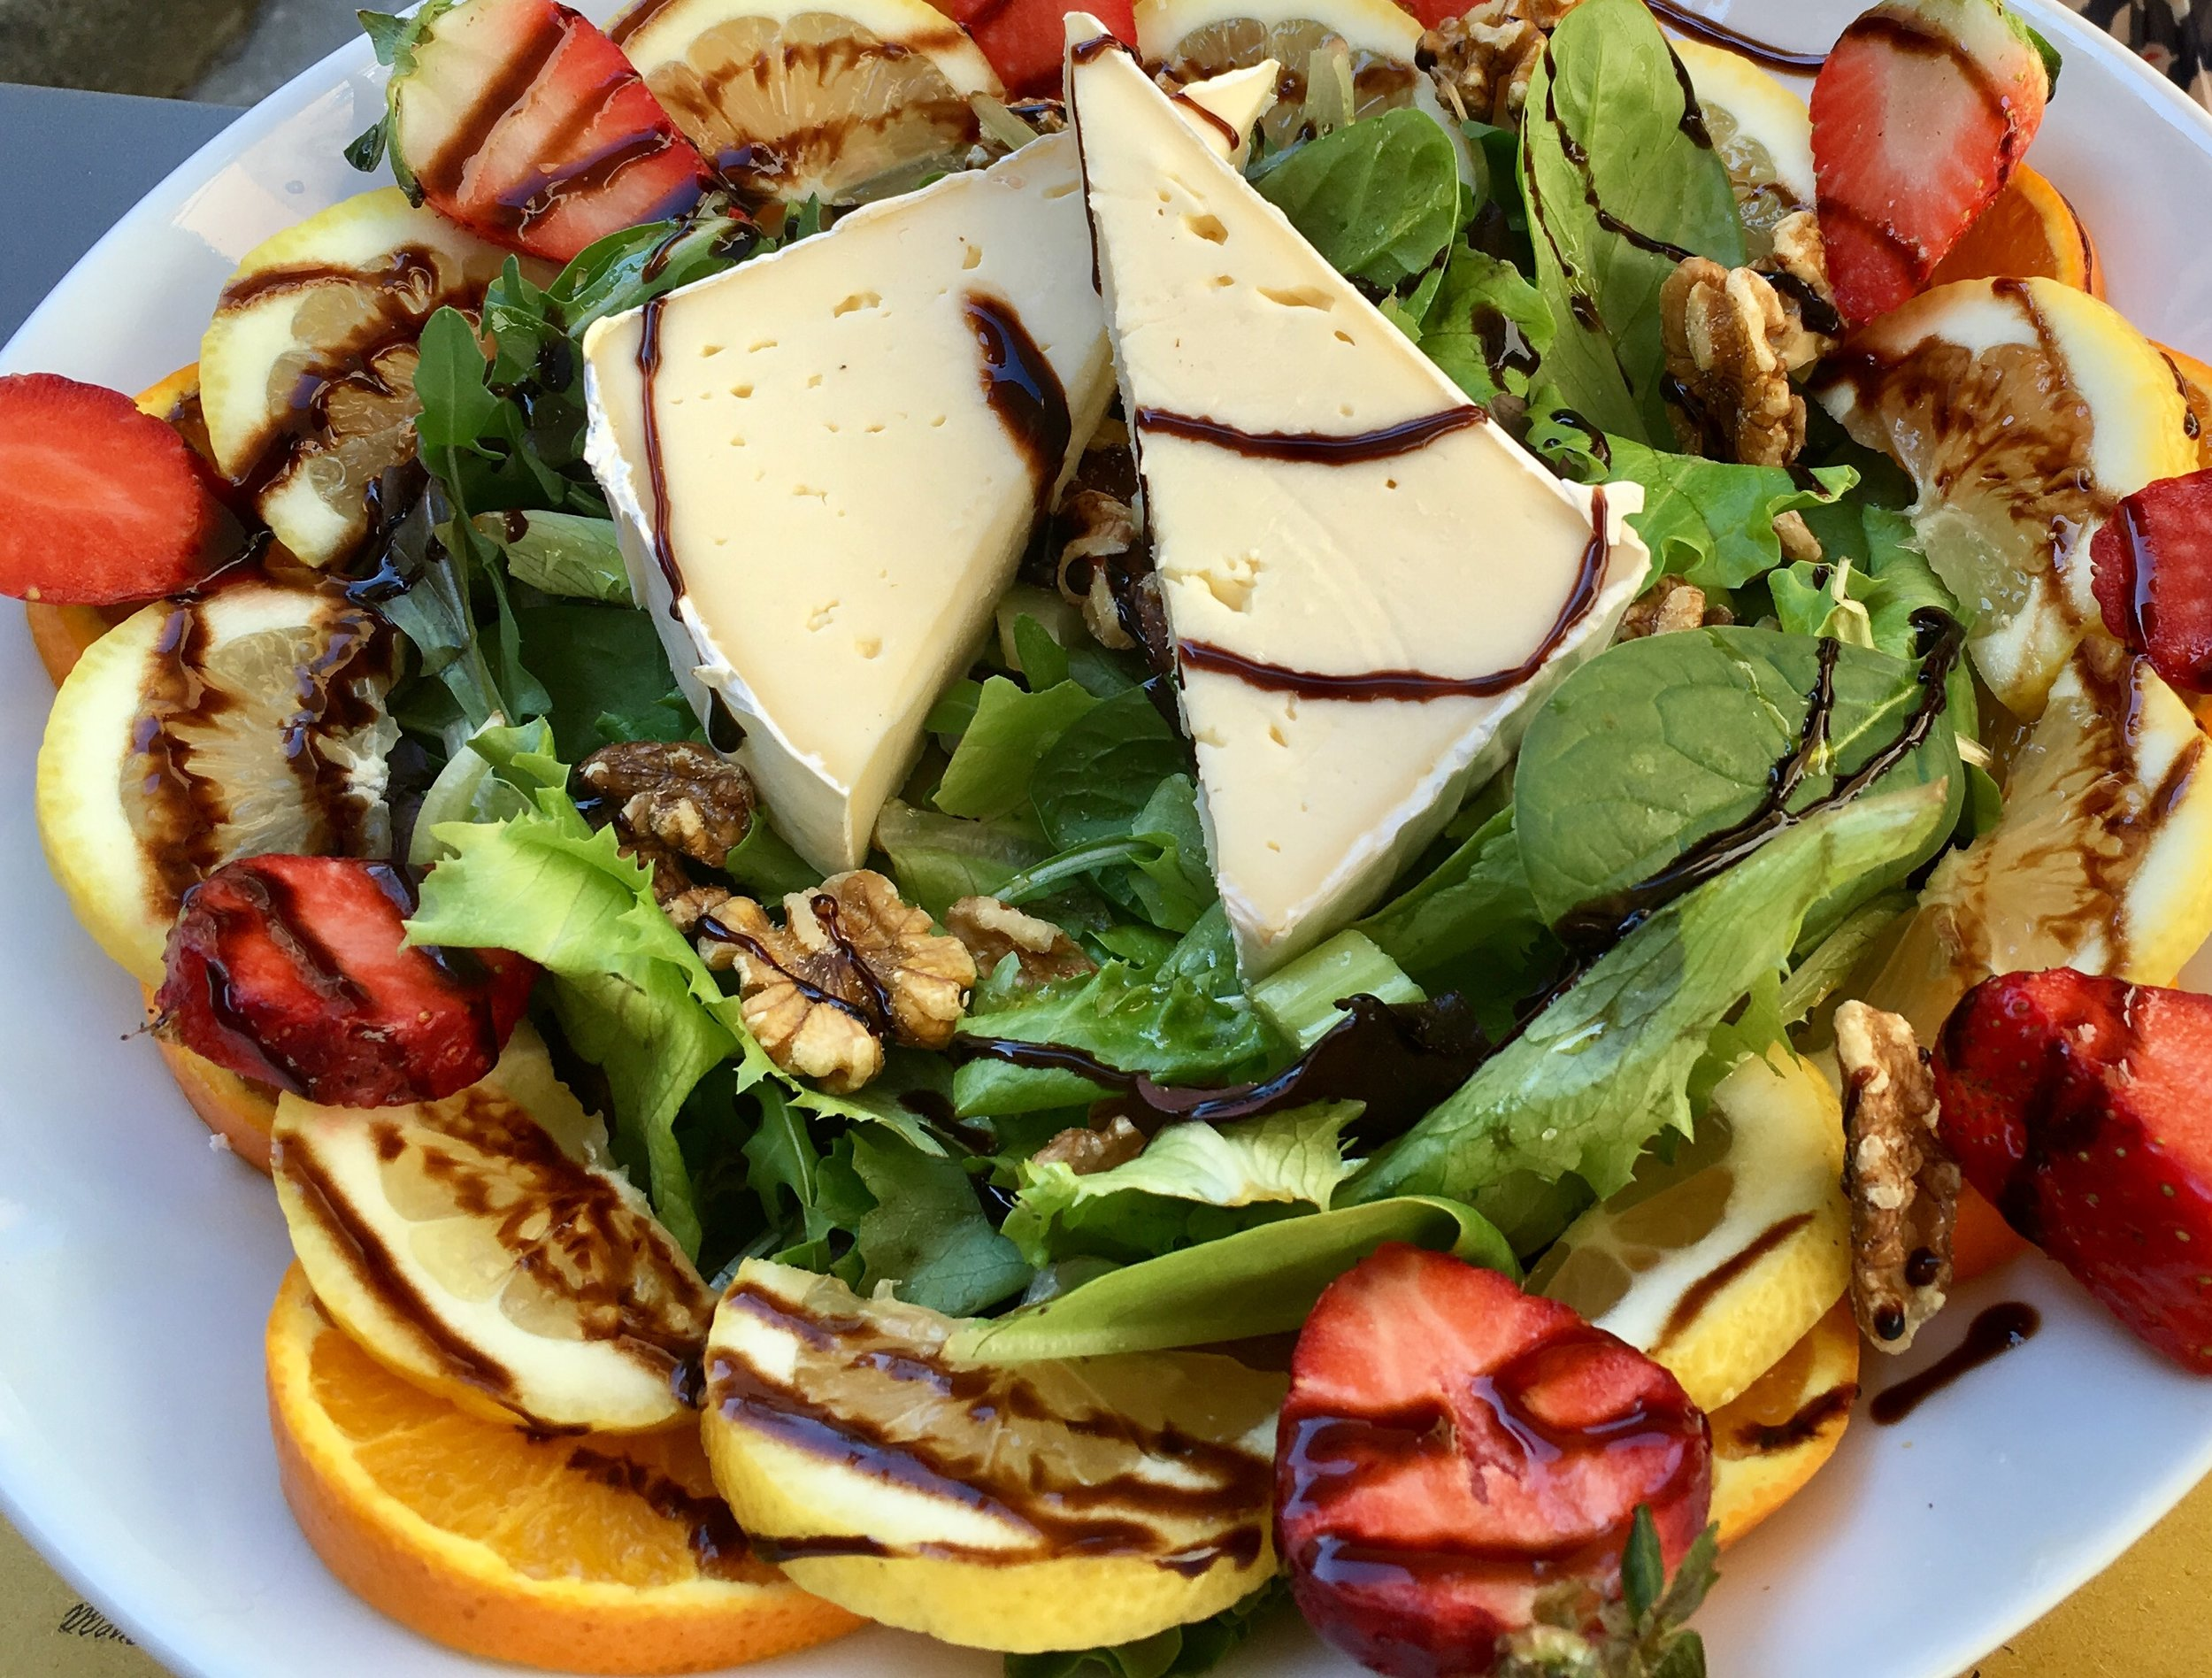 A meal-size salad with fruit, cheese, nuts and a balsamic glaze, Santa Cristina Enoteca, Lucca.